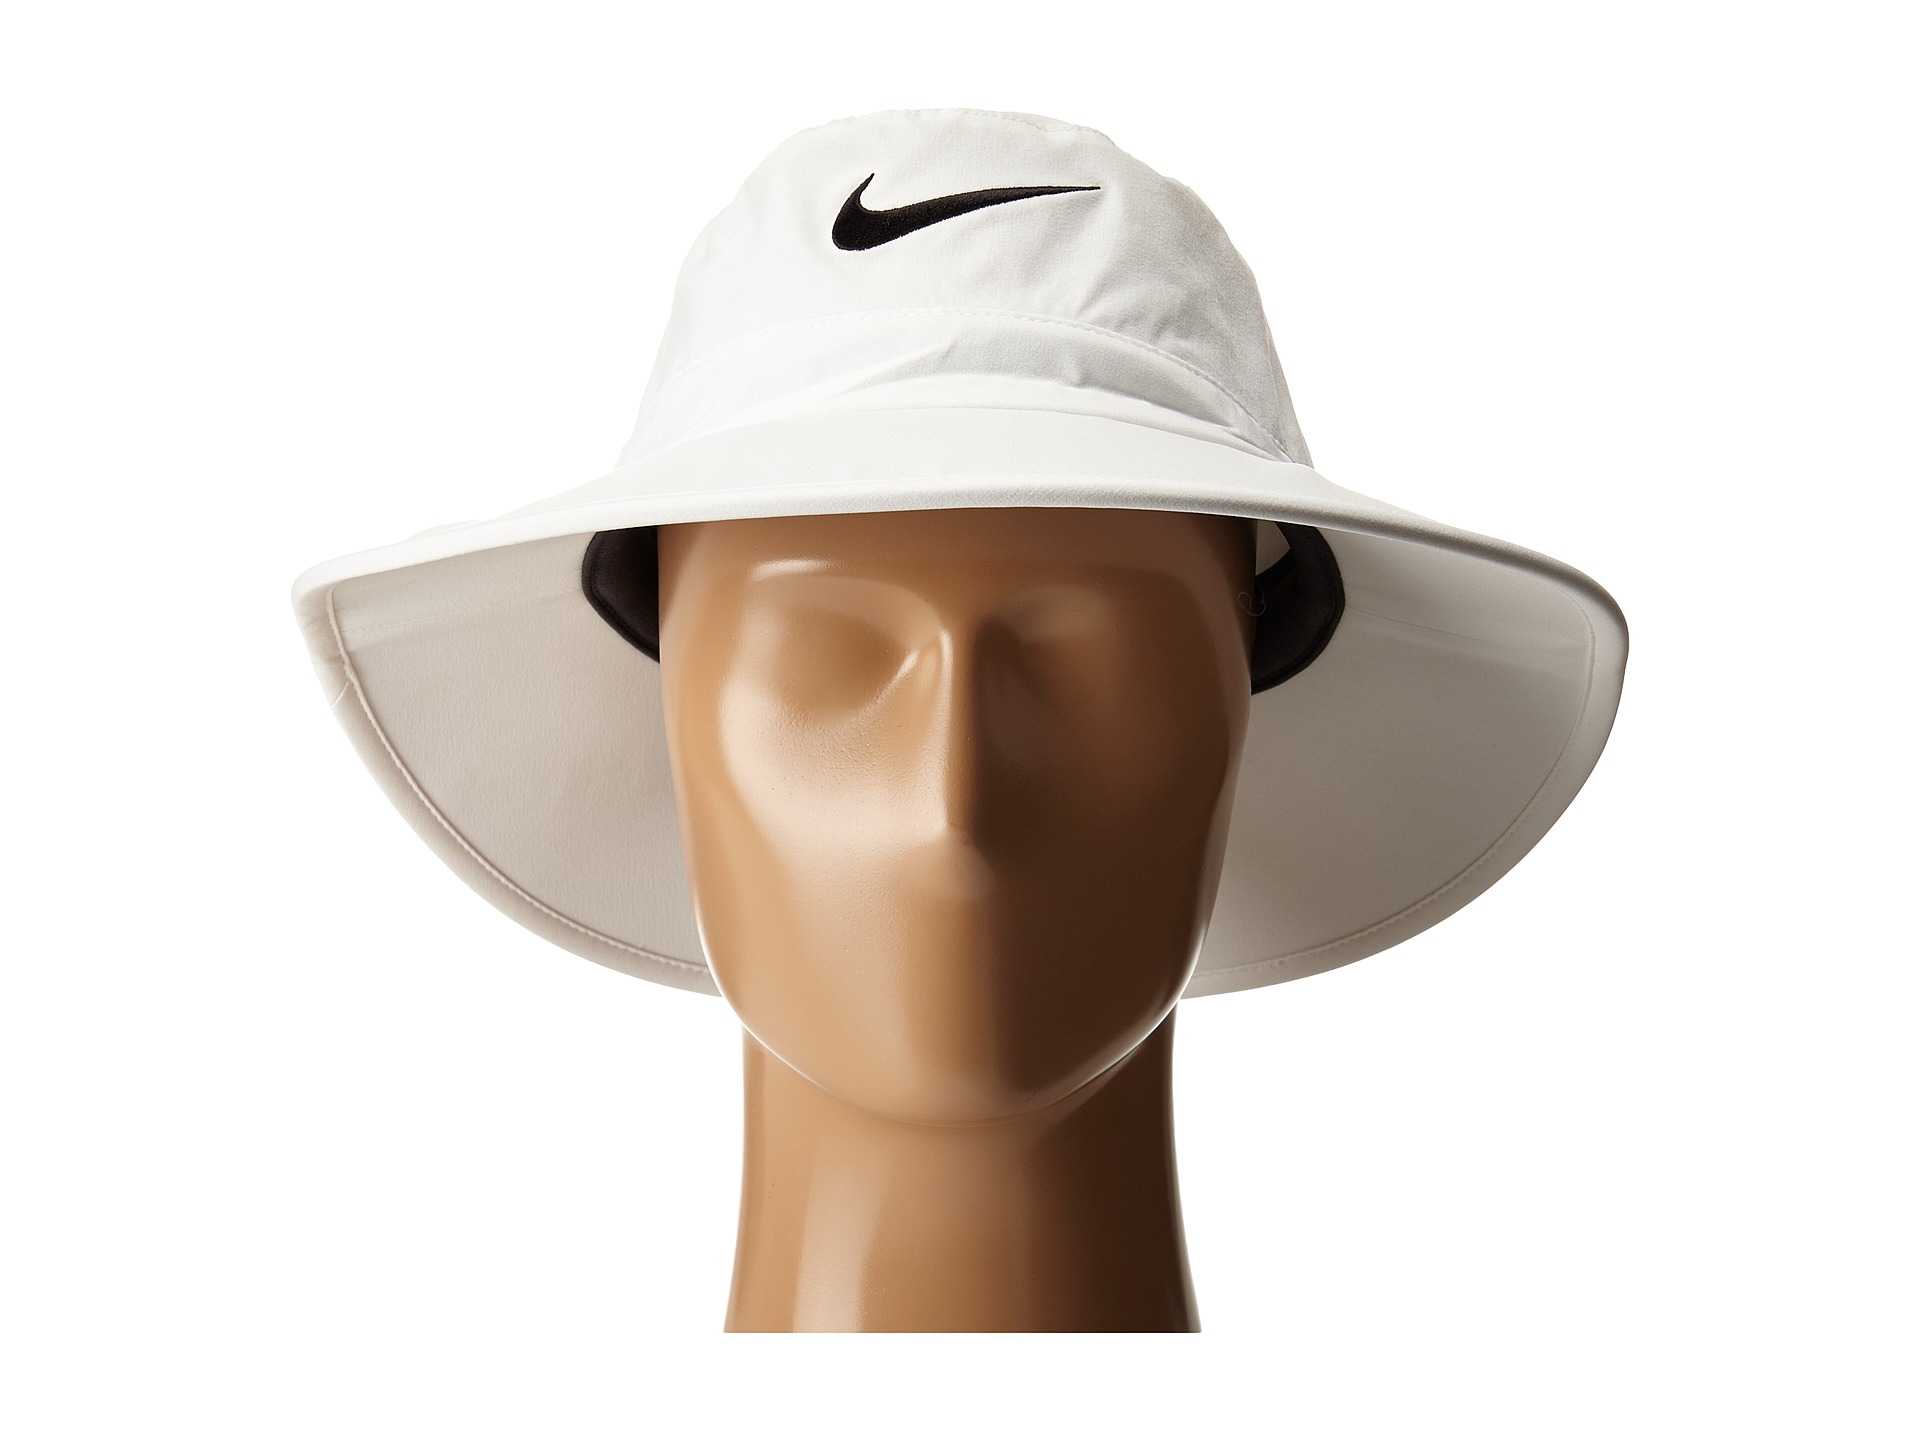 ... ireland lyst nike sun protect bucket cap in white for men 8ca6a 869f2 0d82de94d5c